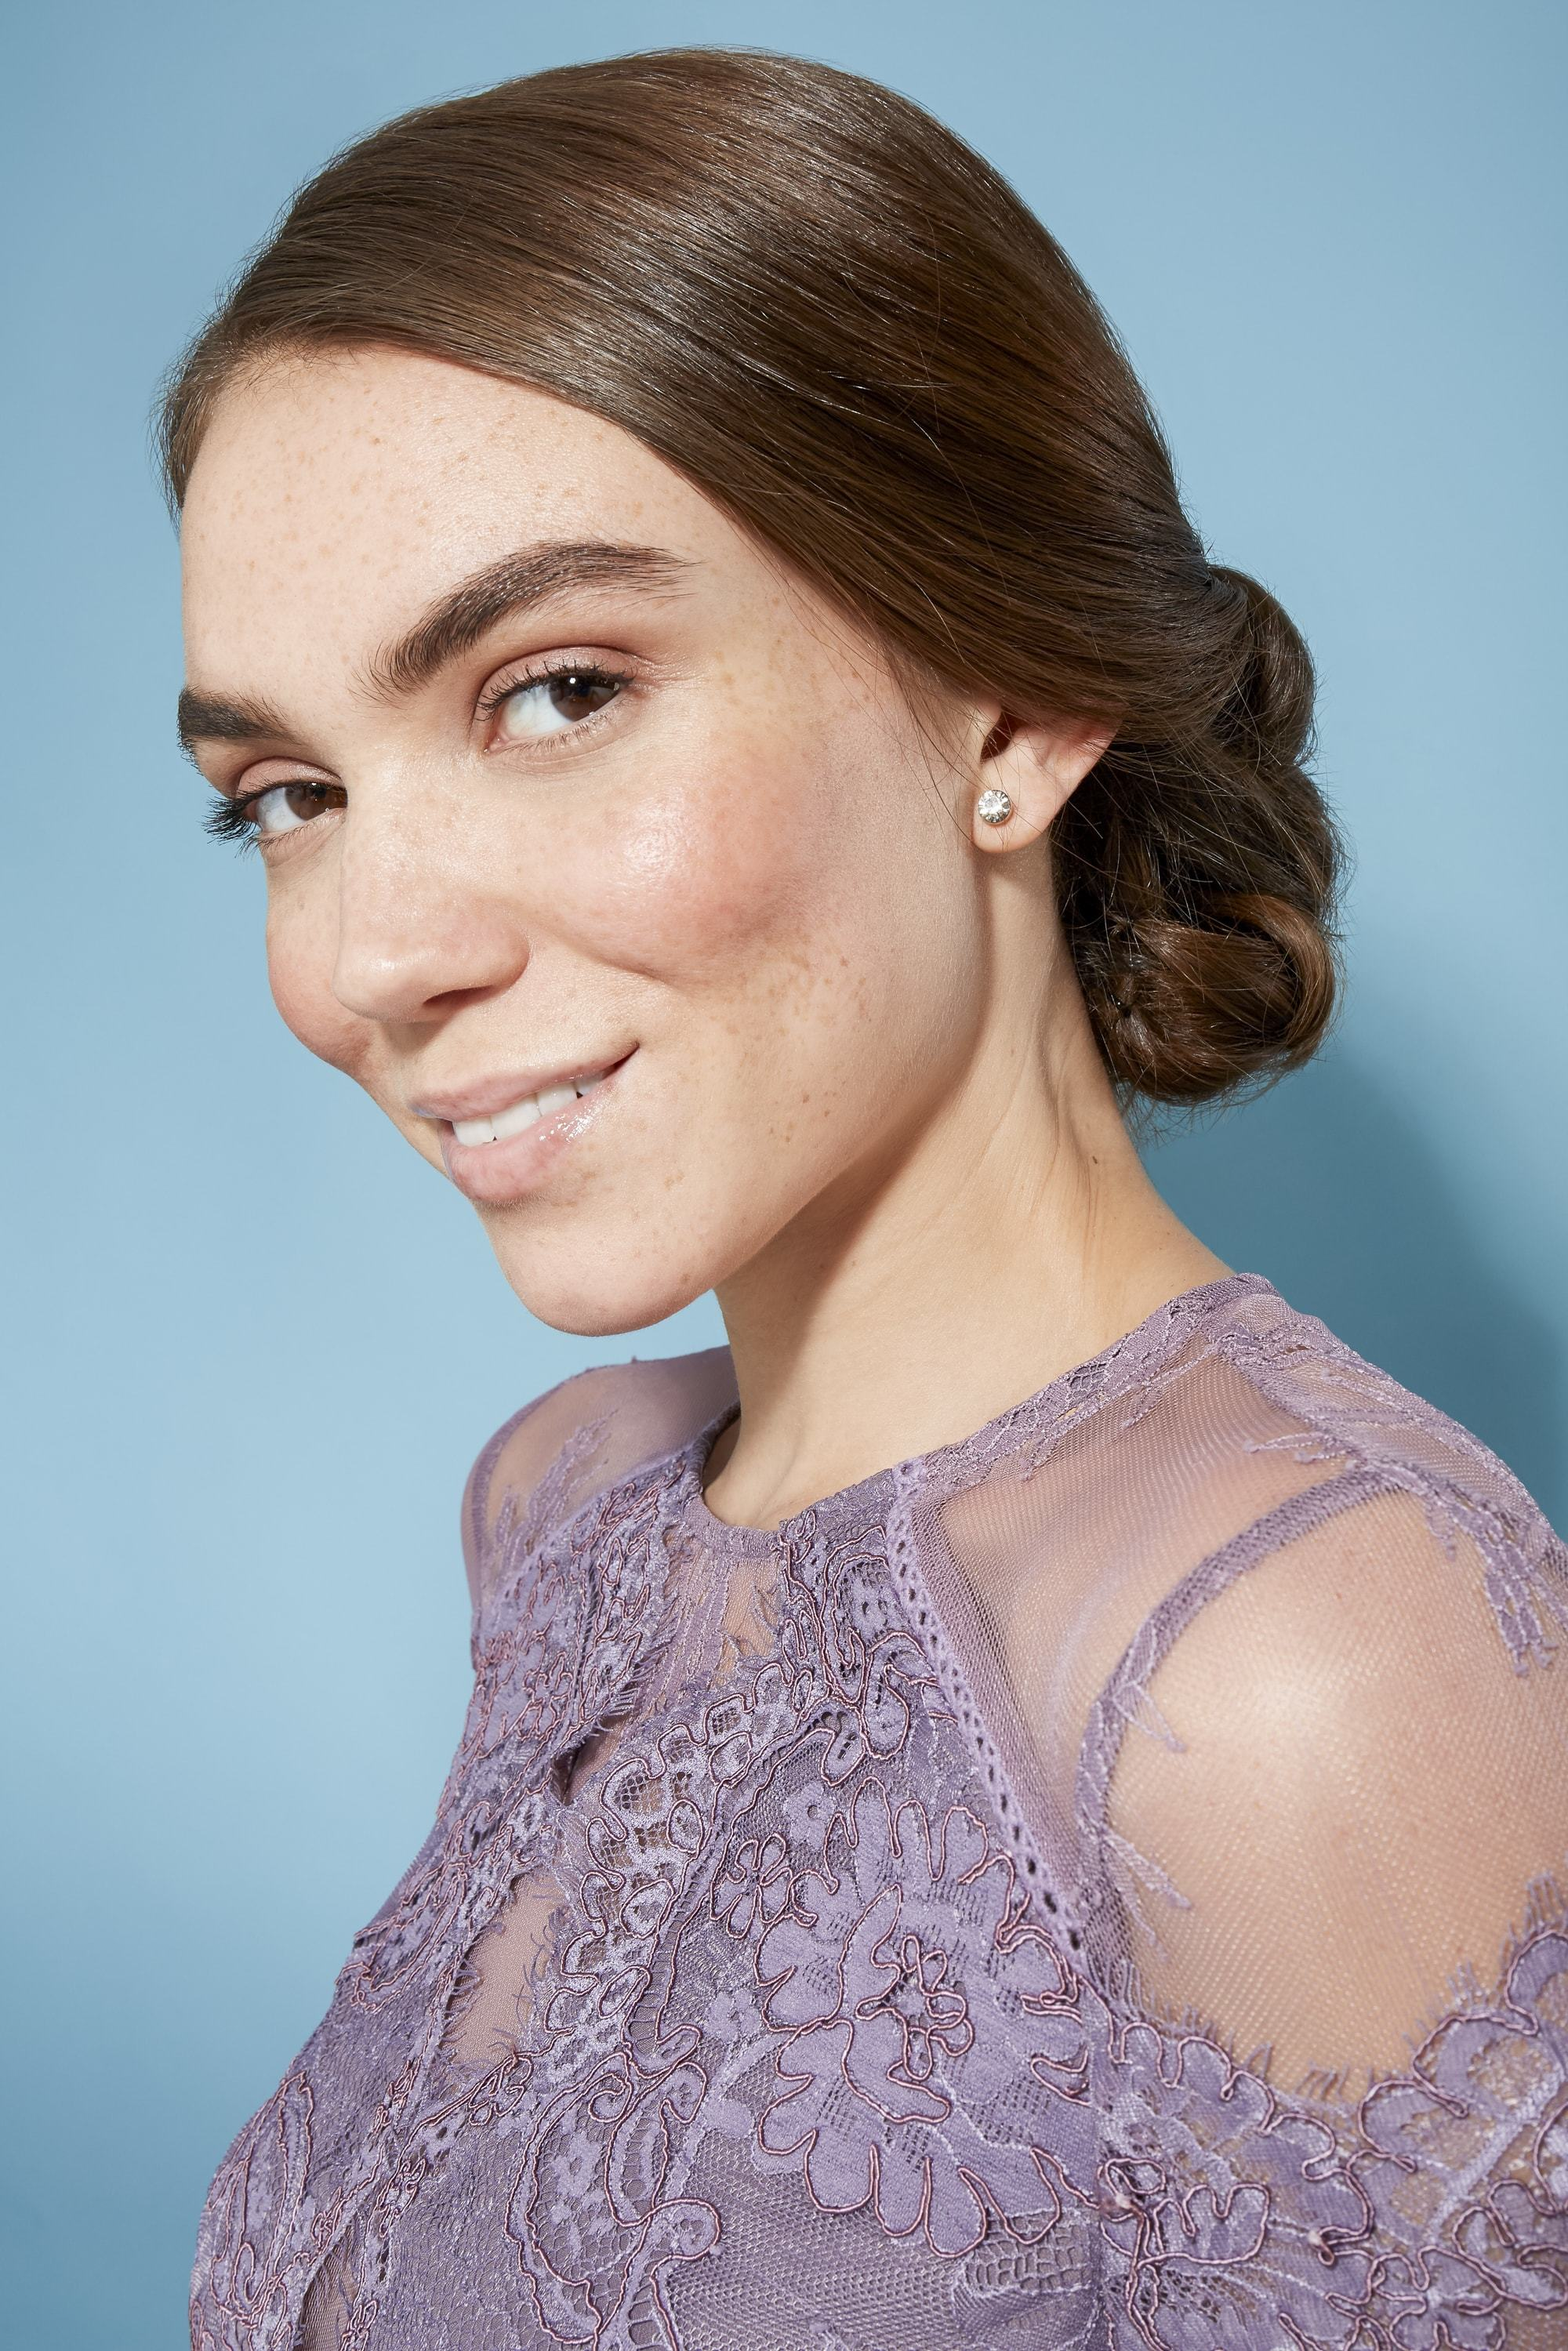 model with brown straight hair styled ina side chignon updo wearing light purple sher and lace top